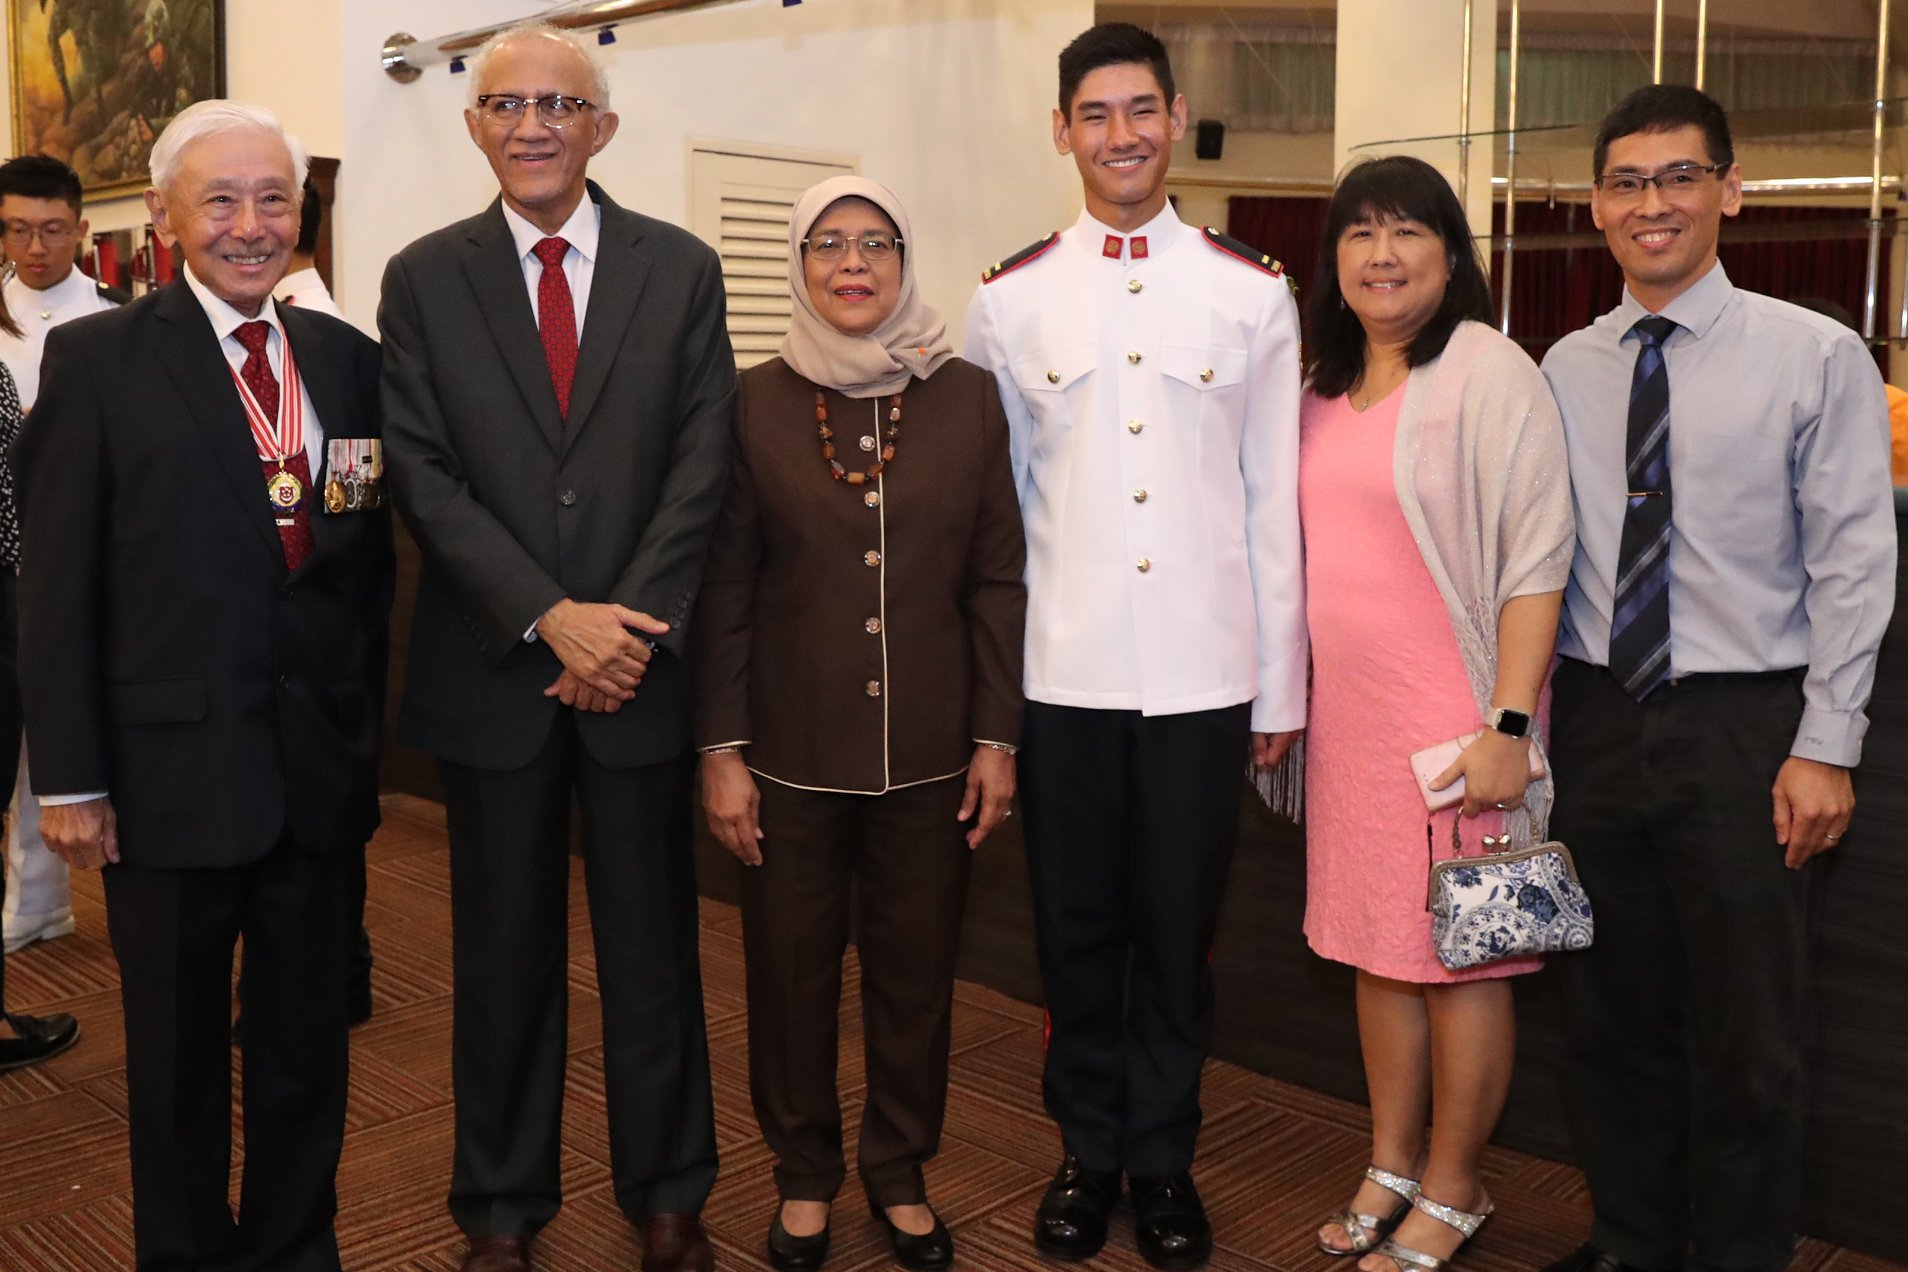 President Halimah with General Winston Choo (first from left), Singapore's first Chief of Defence Force and his grandson, 2LT Daniel Choo (third from right) who was commissioned as SAF officer this evening. Photo courtesy: MCI, Clement